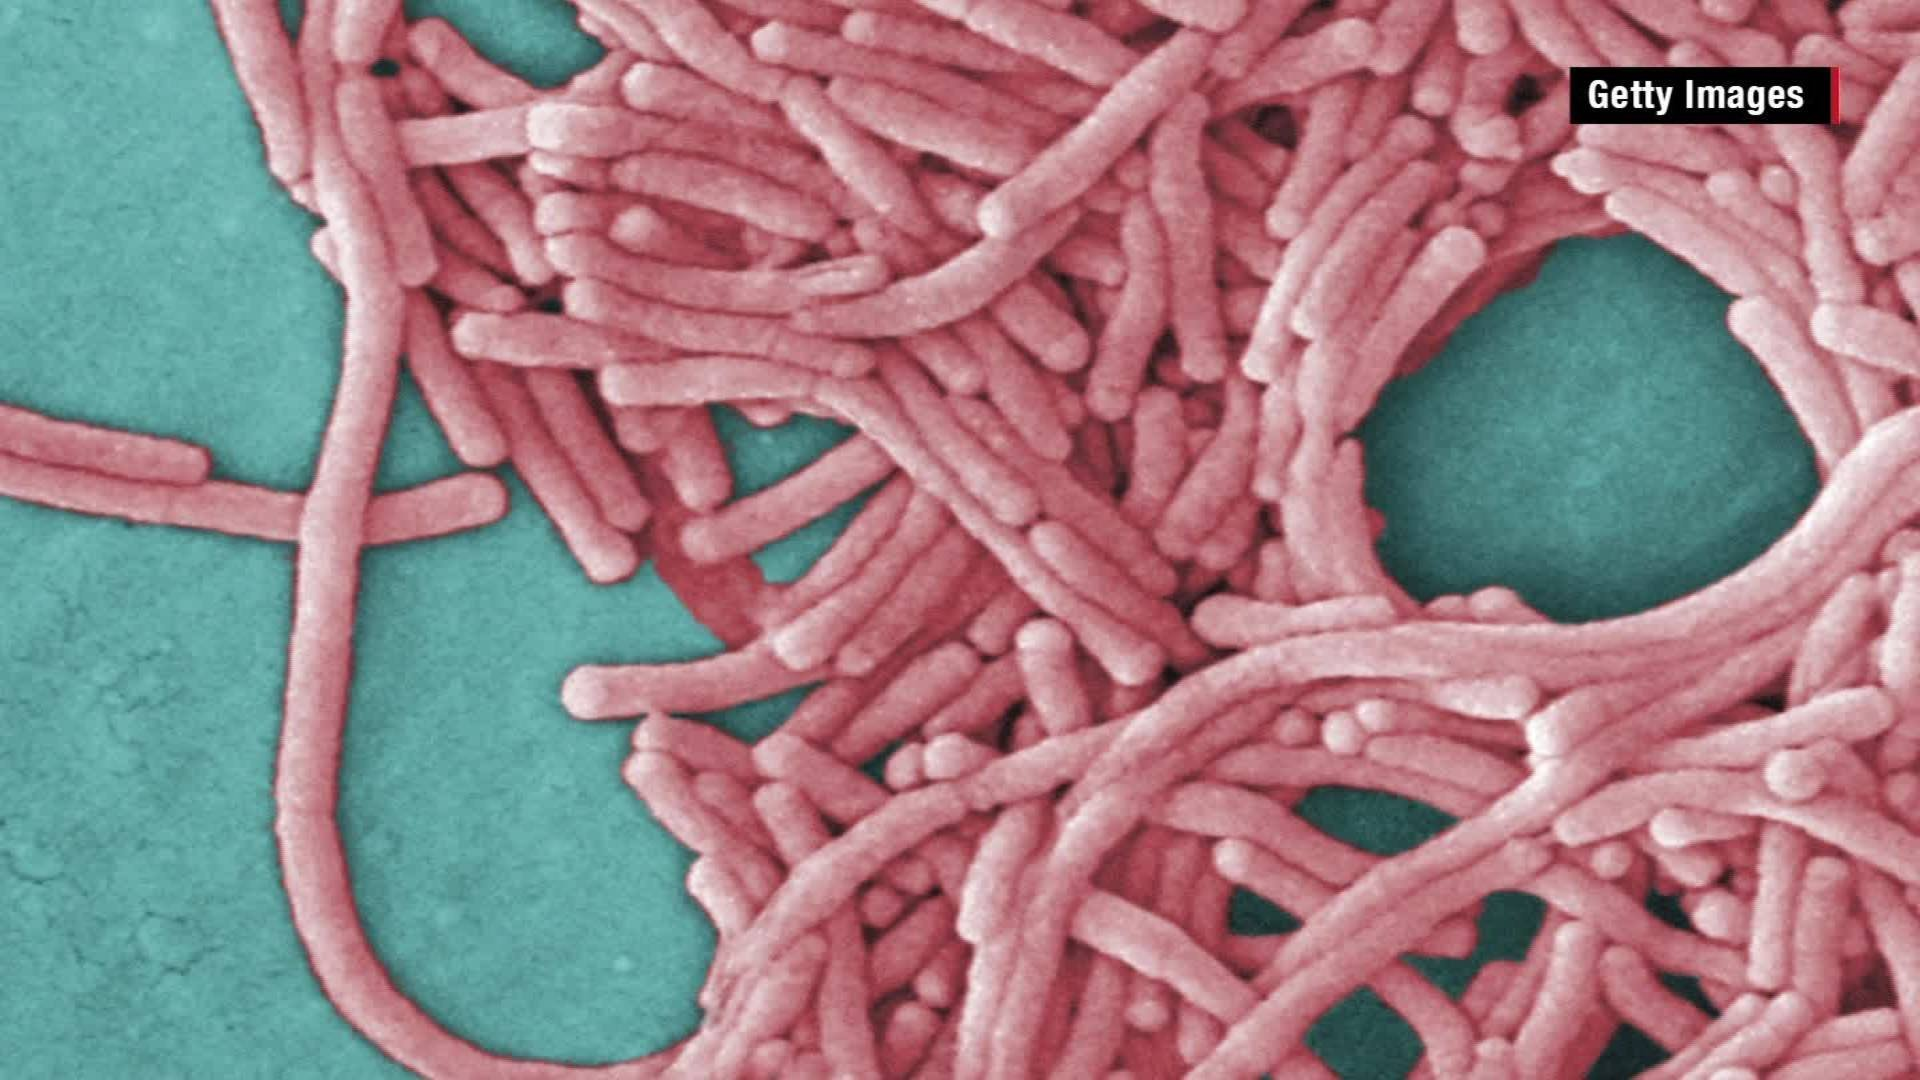 A third person has died after a Legionnaires' disease outbreak in North Carolina